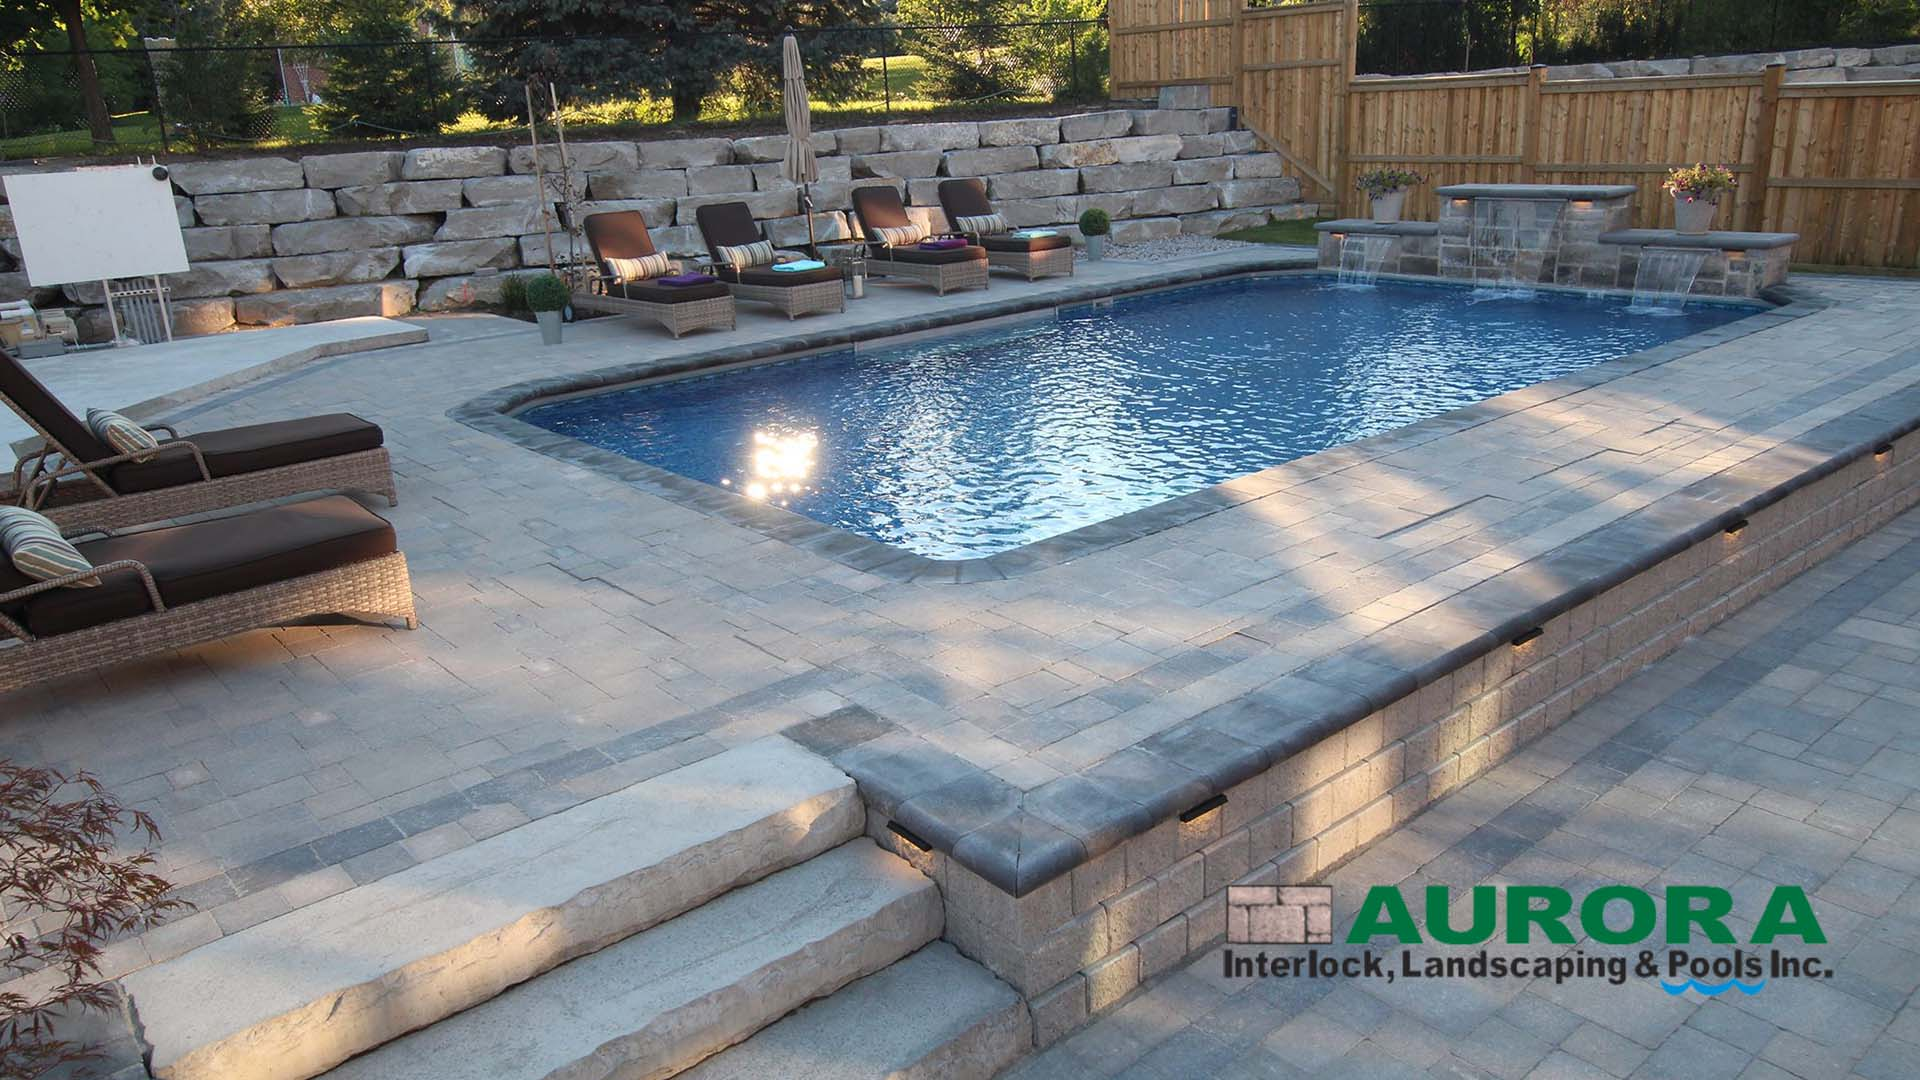 Pool Installations Aurora Interlock